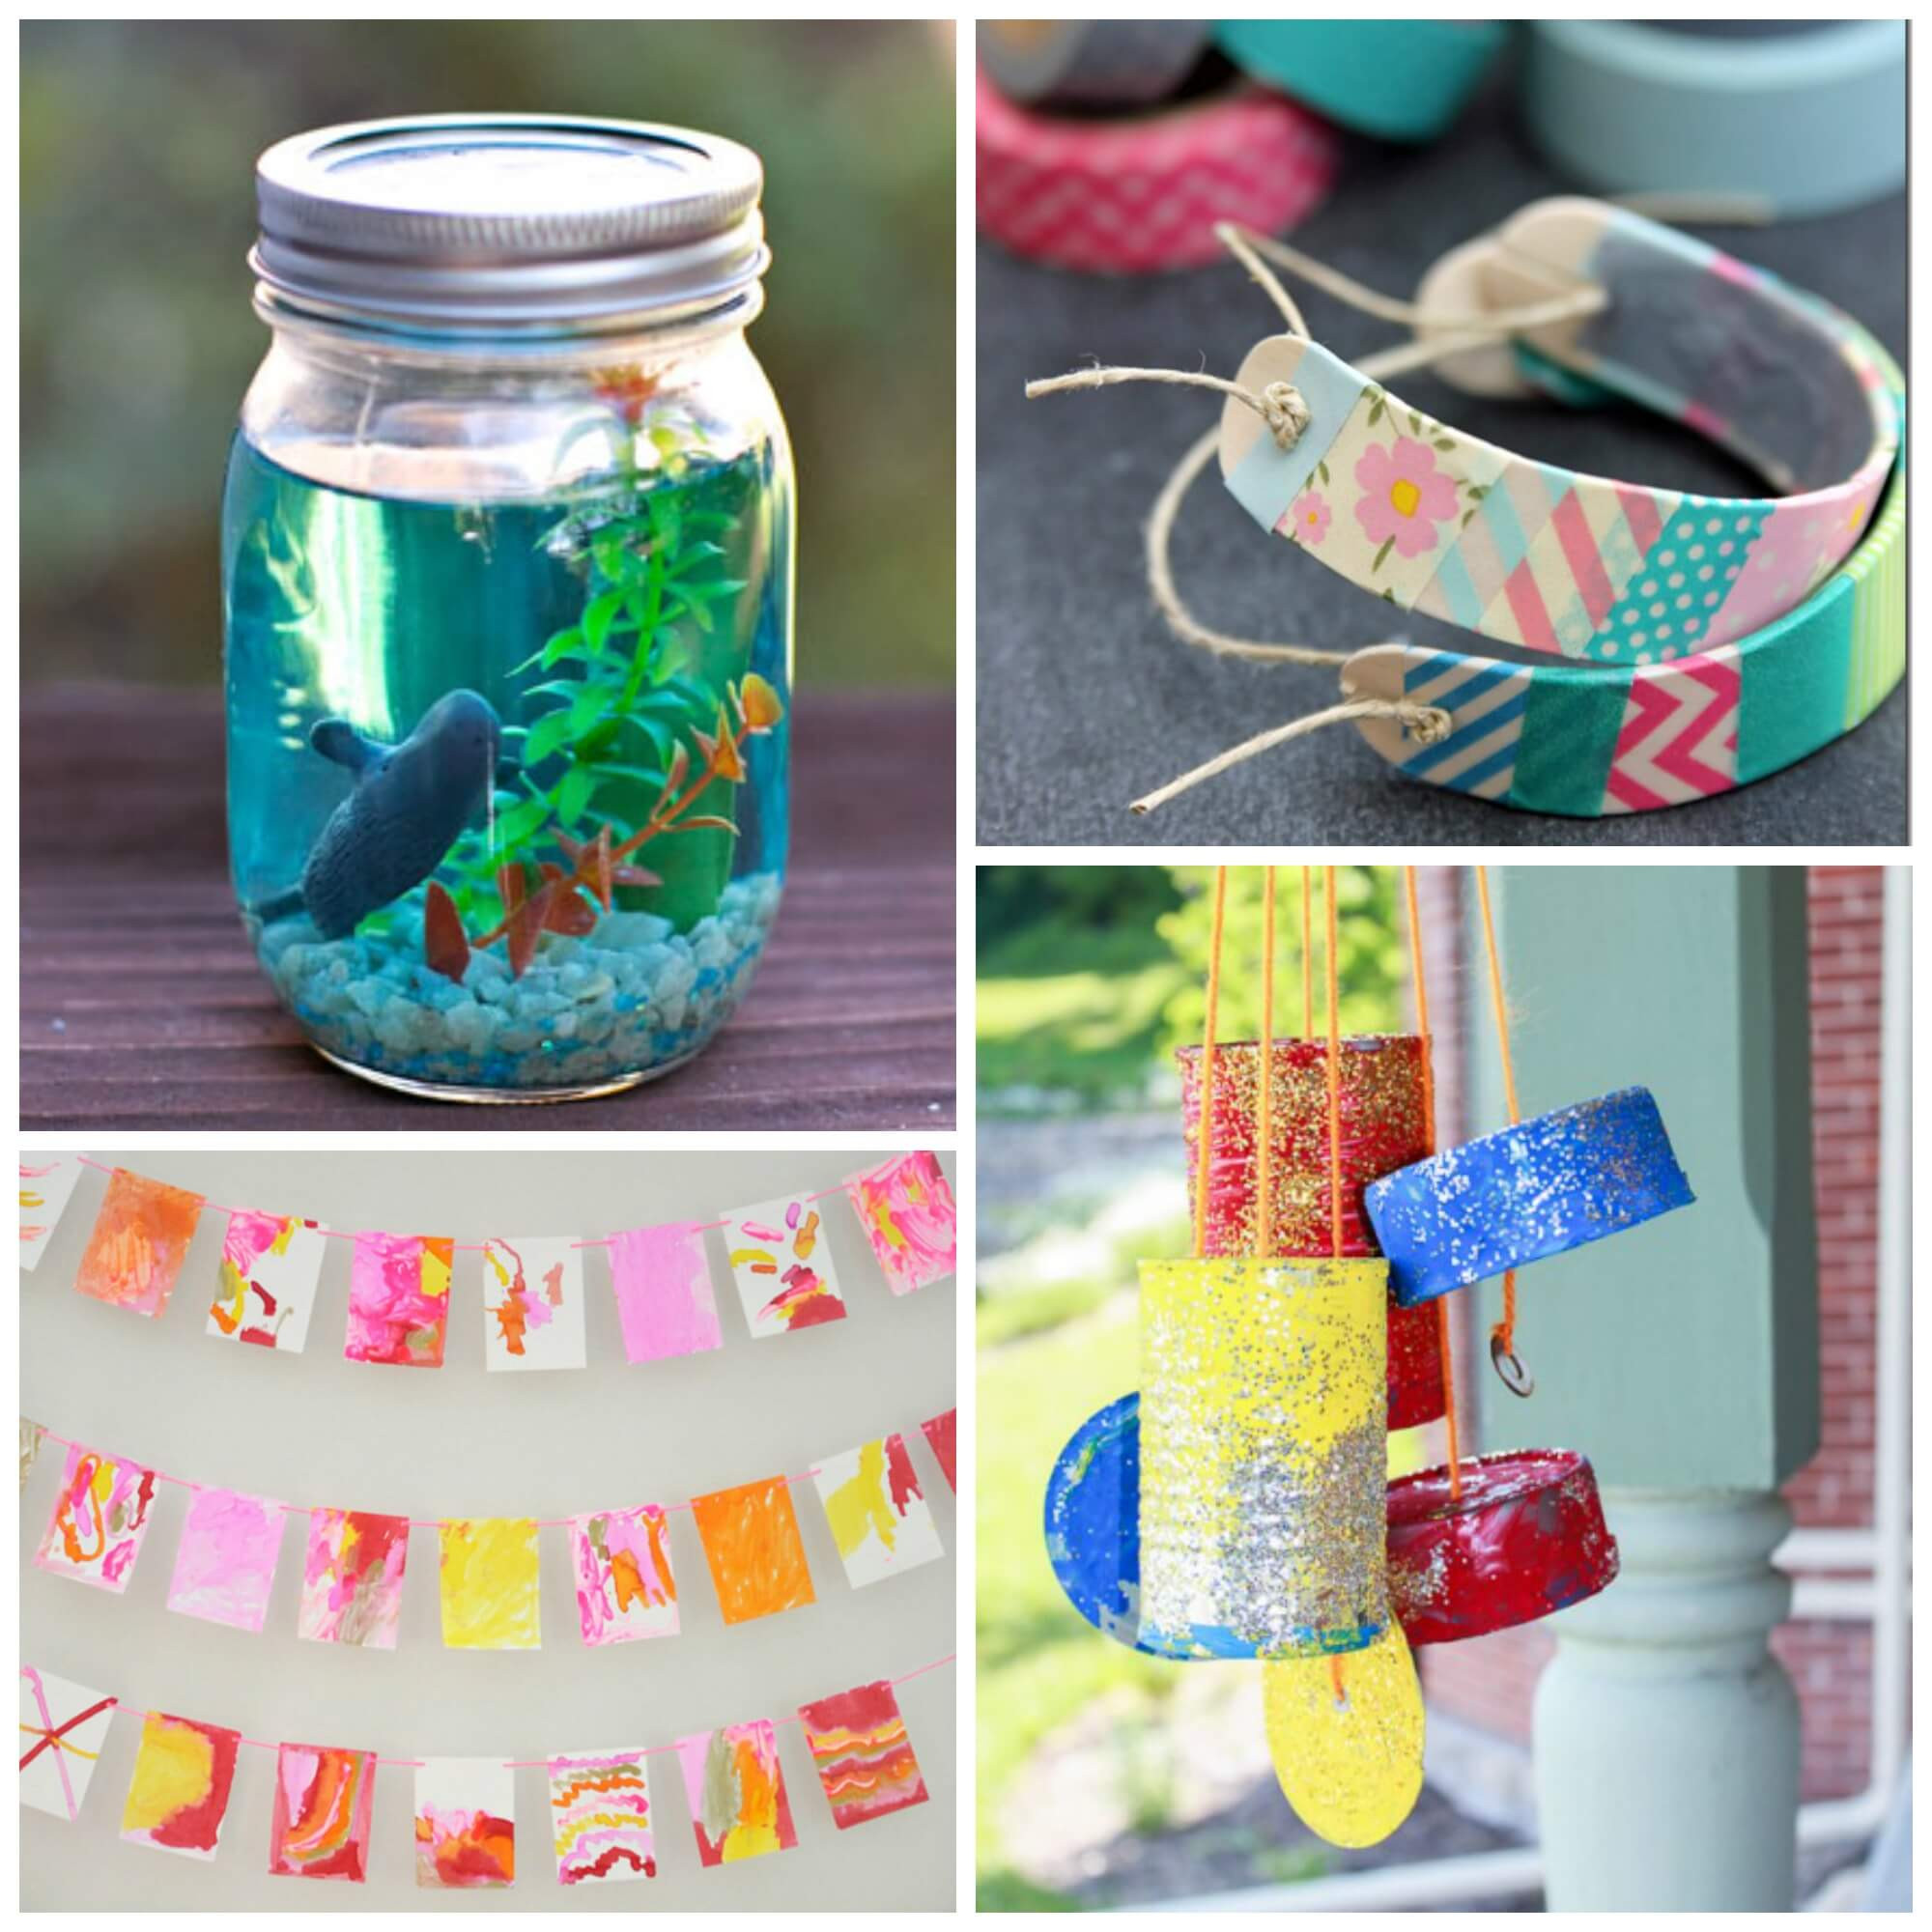 Best ideas about Arts And Crafts For Kids Ideas . Save or Pin 15 Arts and Crafts for Kids Playdough To Plato Now.